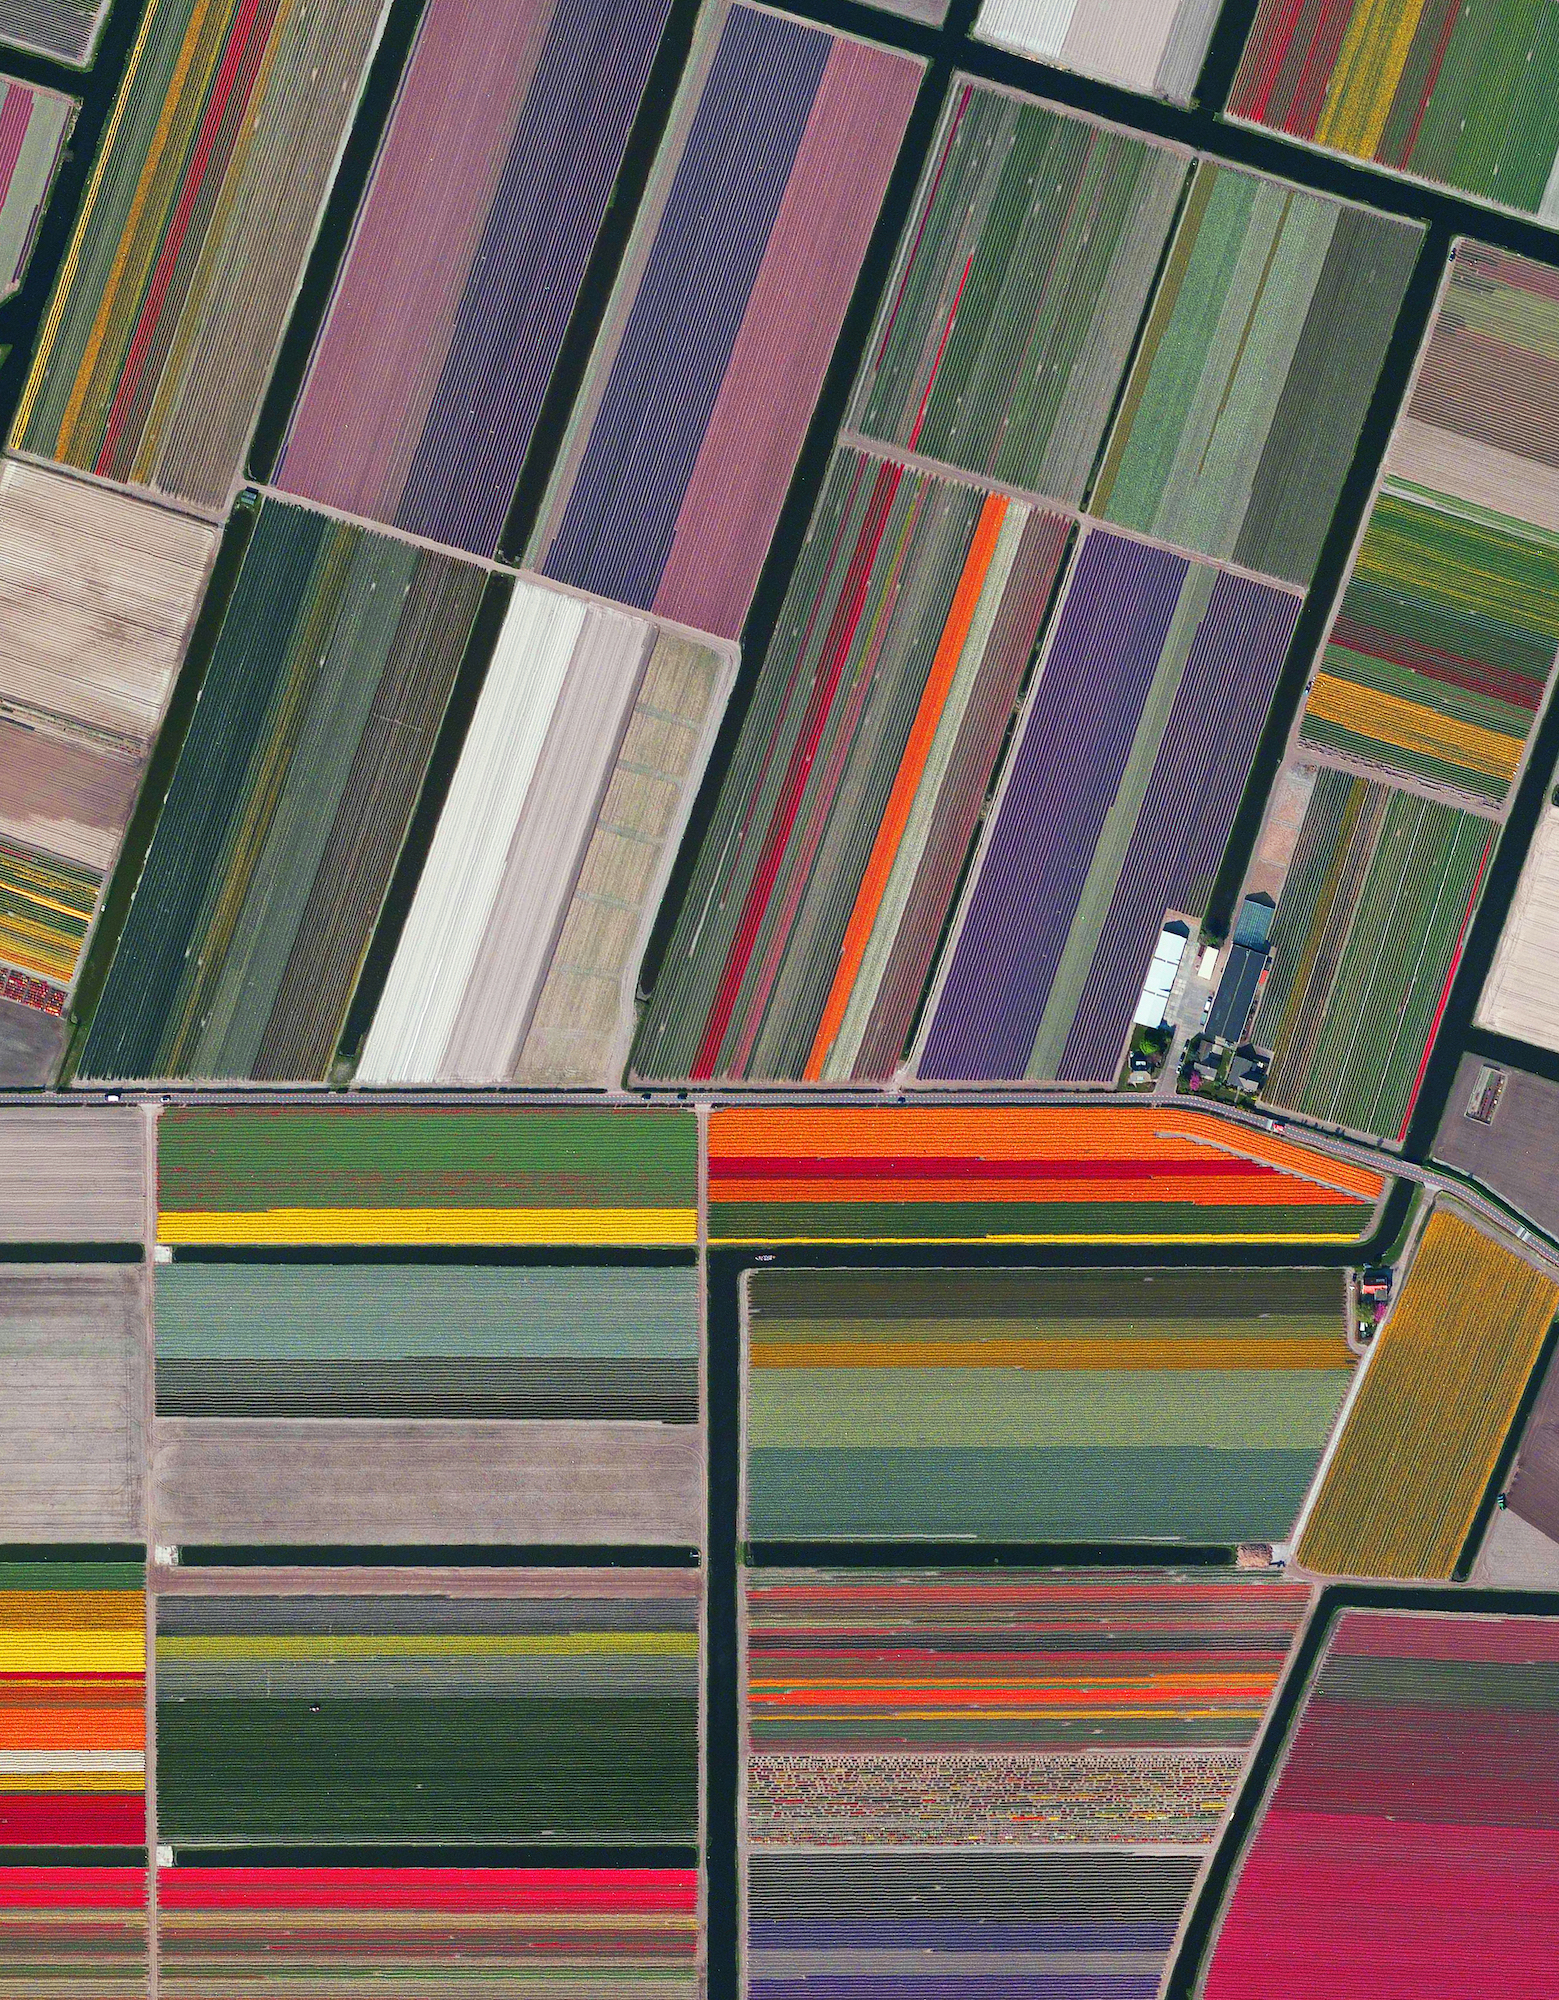 3/7/2016  Tulip Fields  Lisse, Netherlands  52.276355786°, 4.557080790°    Lines of colorful tulips in Lisse, Netherlands to honor the birthday of my favorite artist, Piet Mondrian! The Netherlands, where Mondrian was born on this day in 1872, produces 4.3 billion tulip bulbs every year. Mondrian is most well known for his paintings with straight black lines and blocks of the three primary colors.